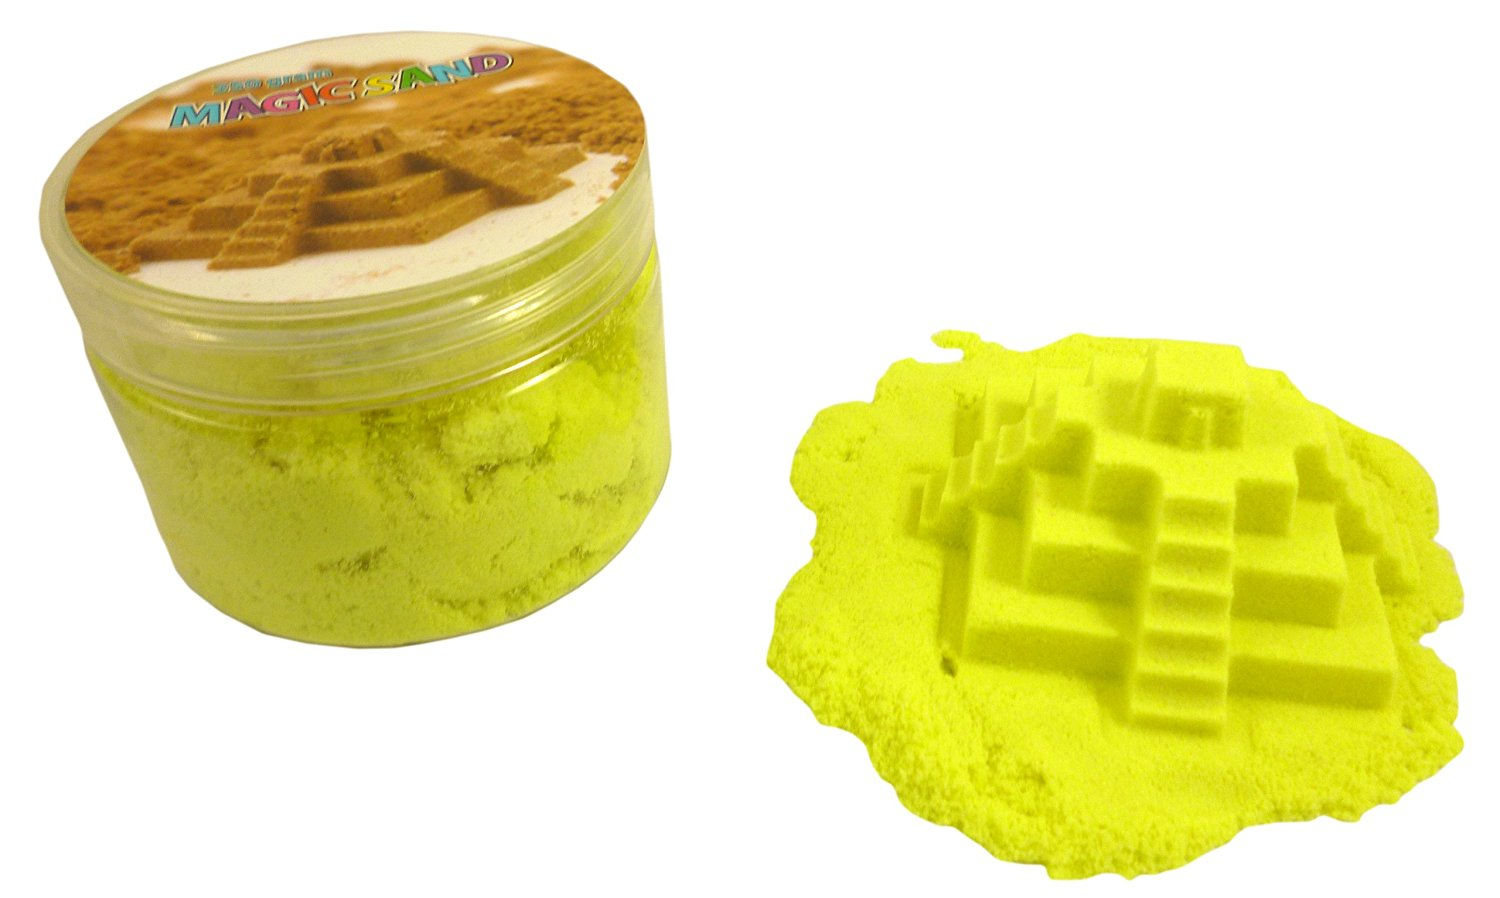 Magic Sand Refill - 250g- YELLOW - Play Sand With No Mess! - Sculpture, Mold ...